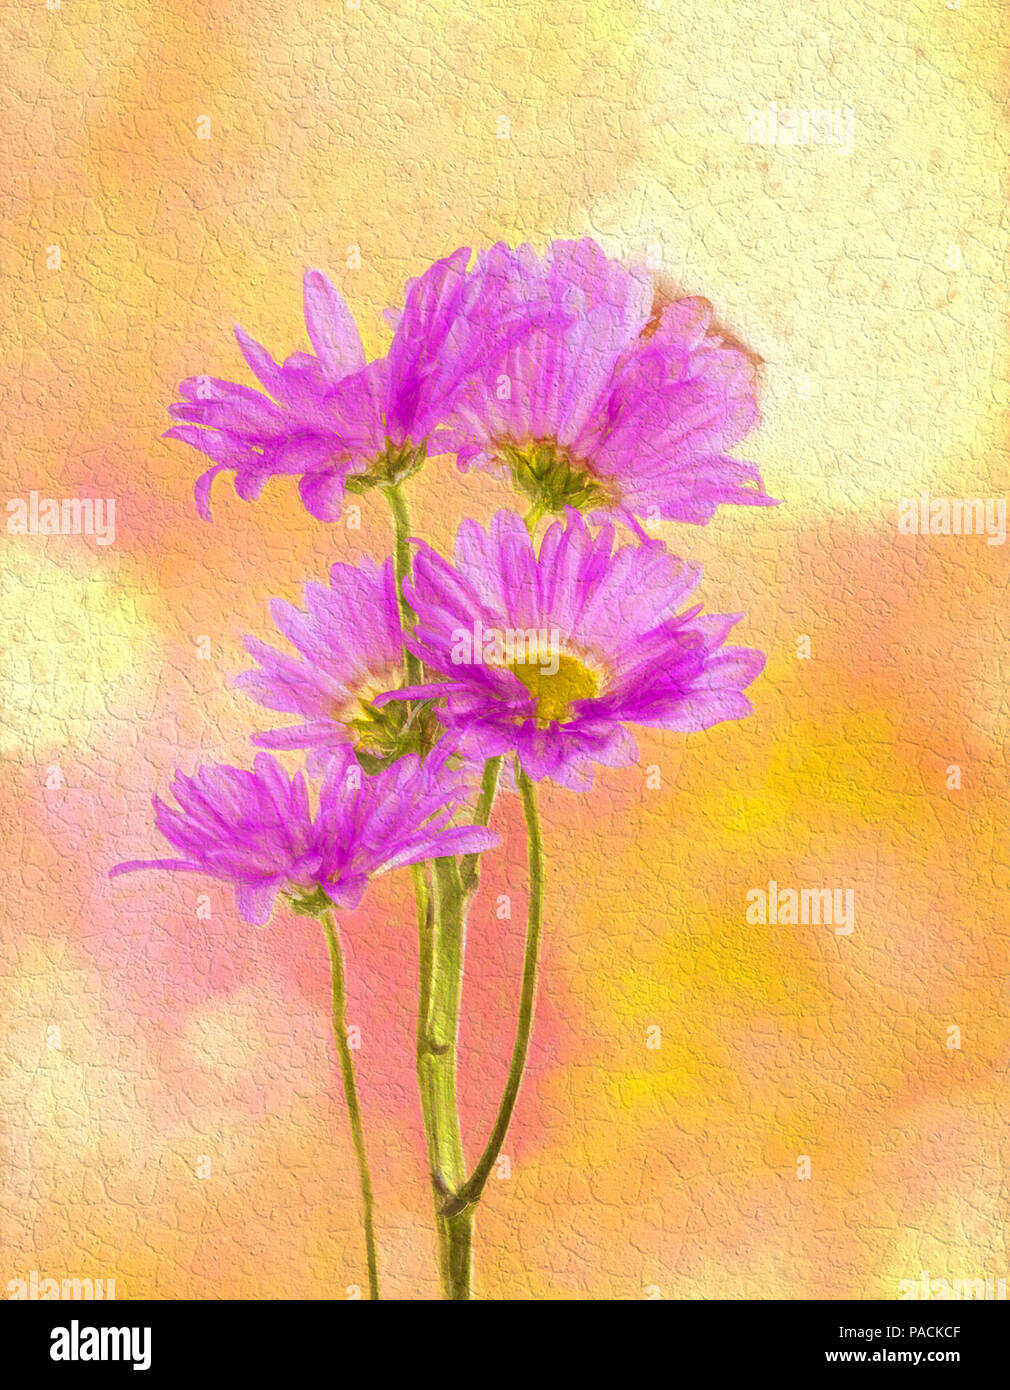 Pink Chrysanthemums or Mums against a yellow background - Stock Image